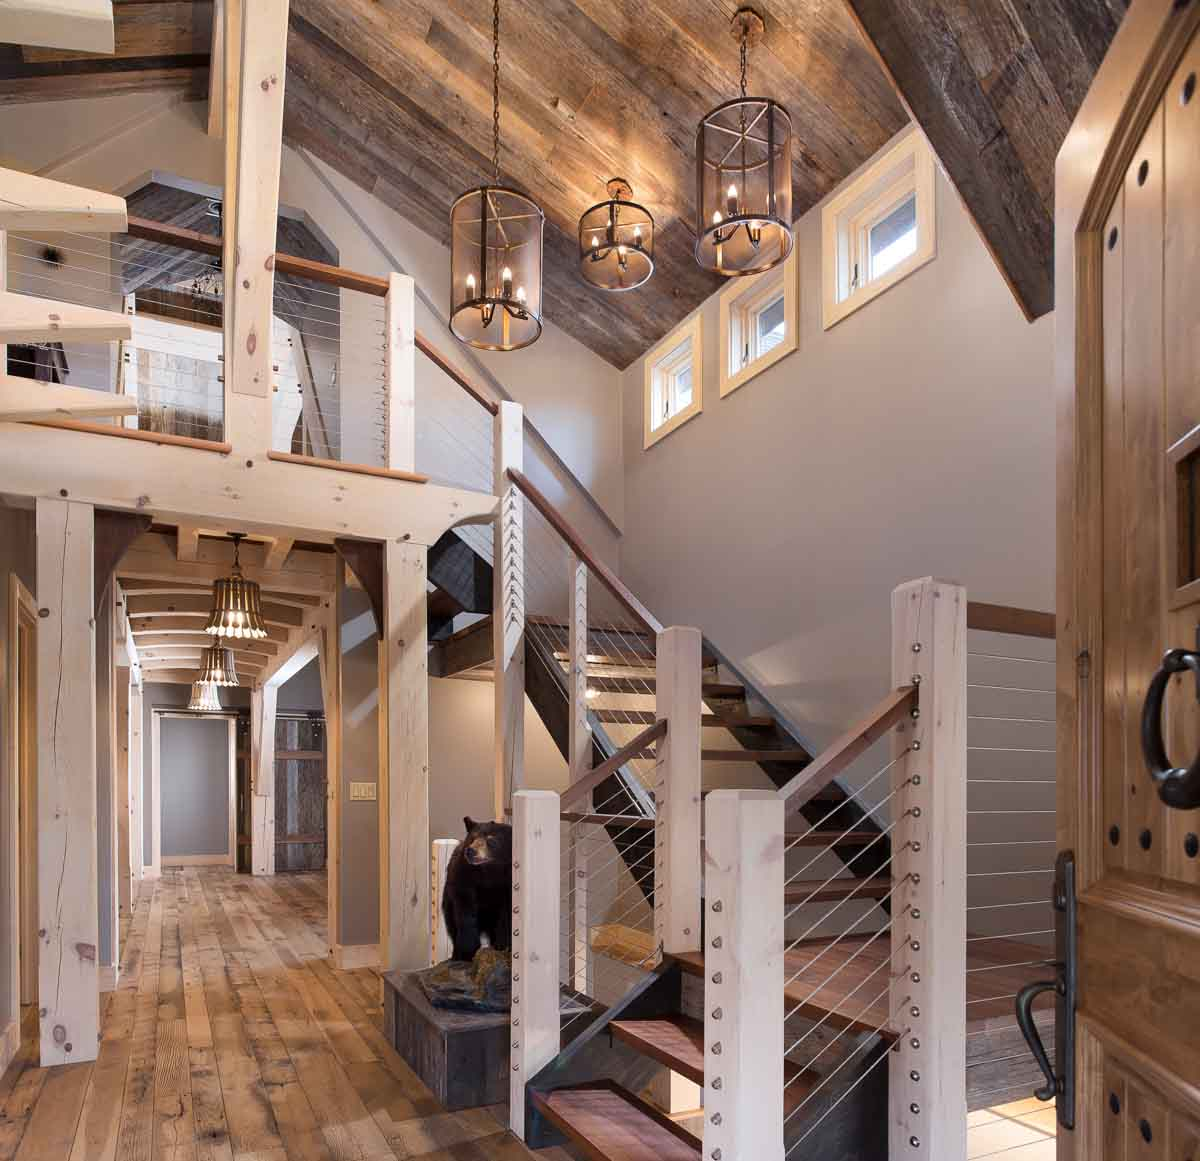 An open concept timber framed staircase